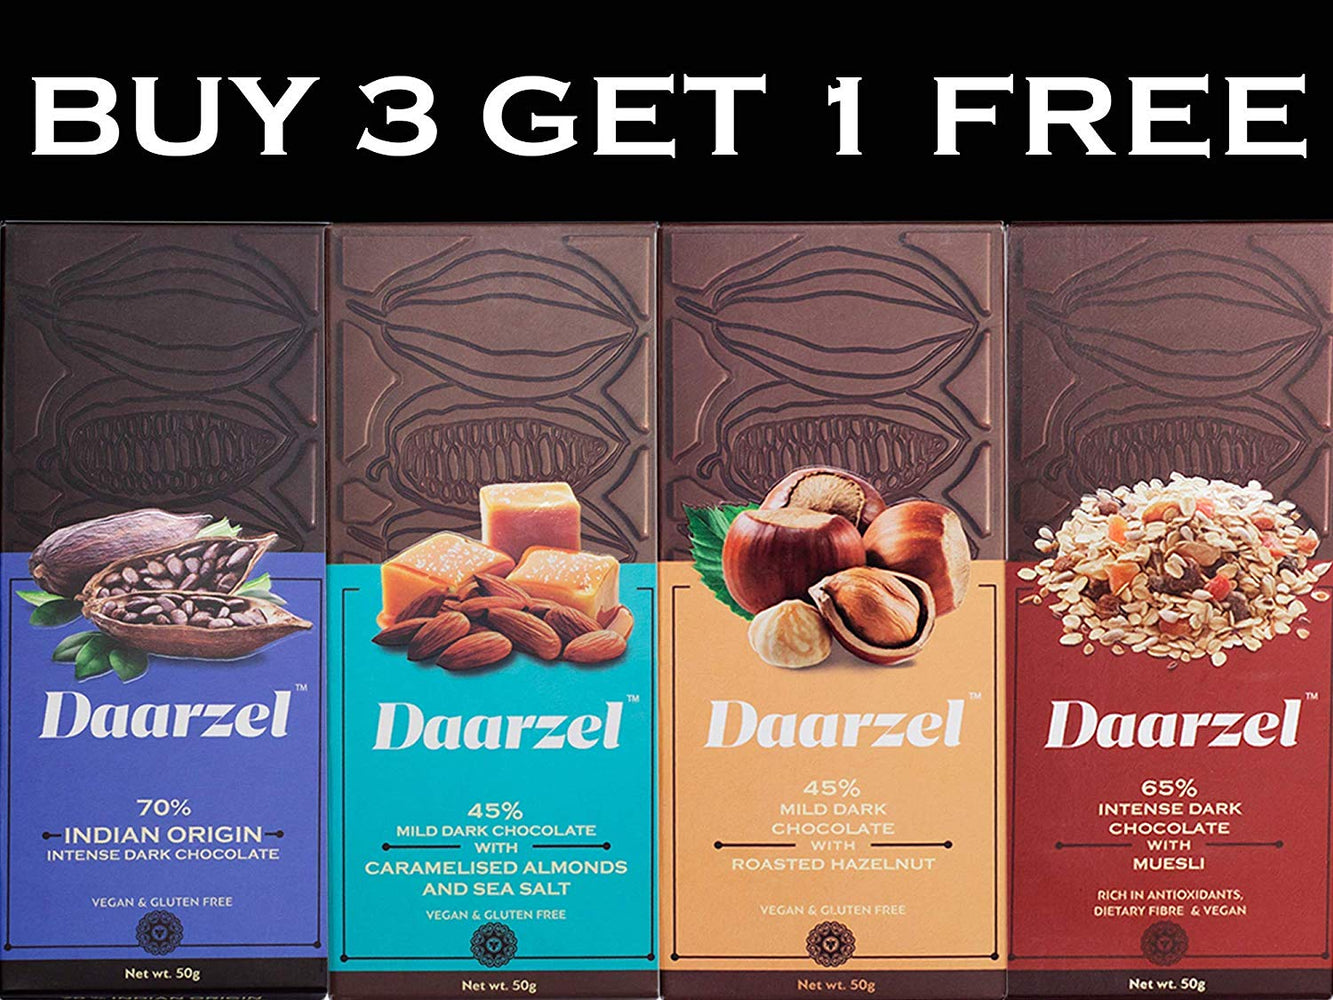 Daarzel - Dark Chocolate Box (Buy 3 Get 1 Free) Hazelnut, Caramelised Almond, Granola and Indian Origin